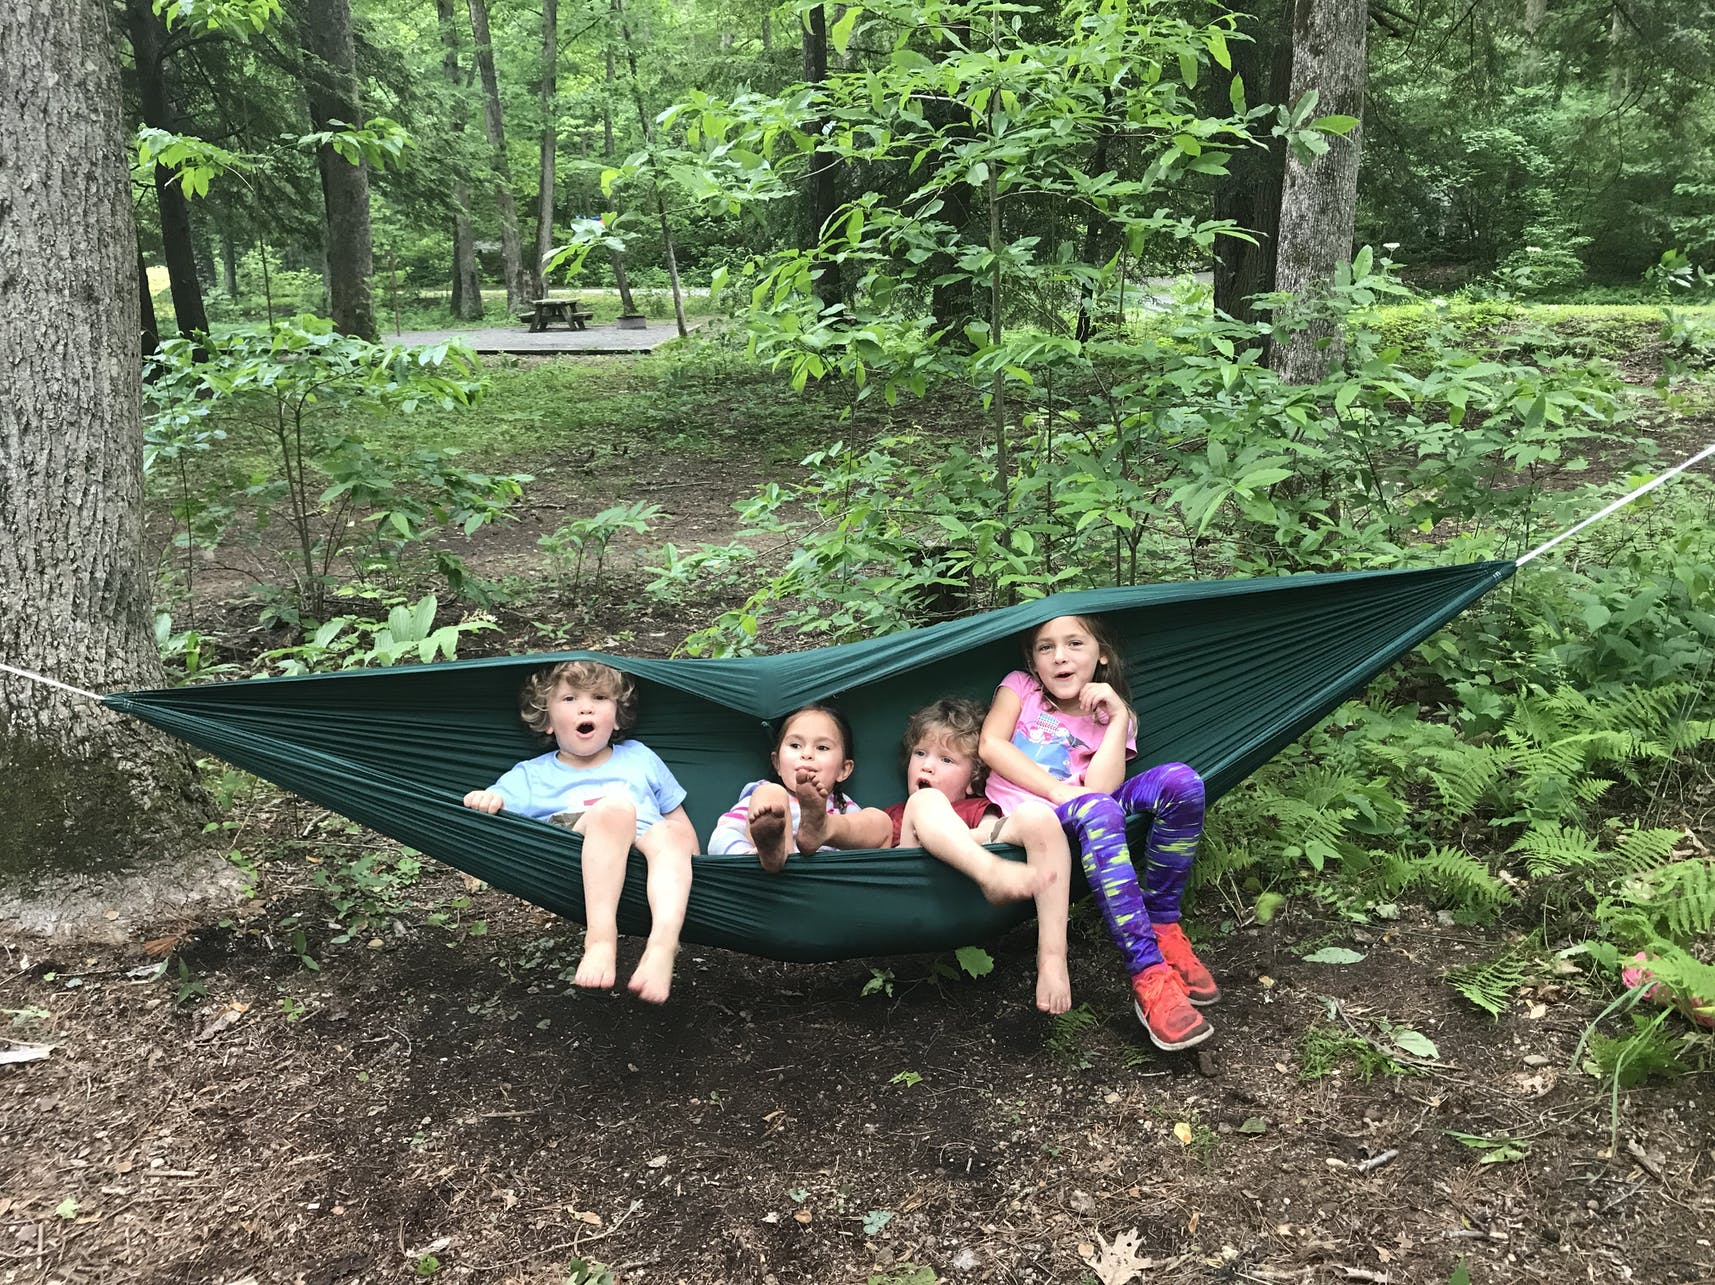 Kids hanging out in a hammock at a campsite in Northeastern Tennessee.